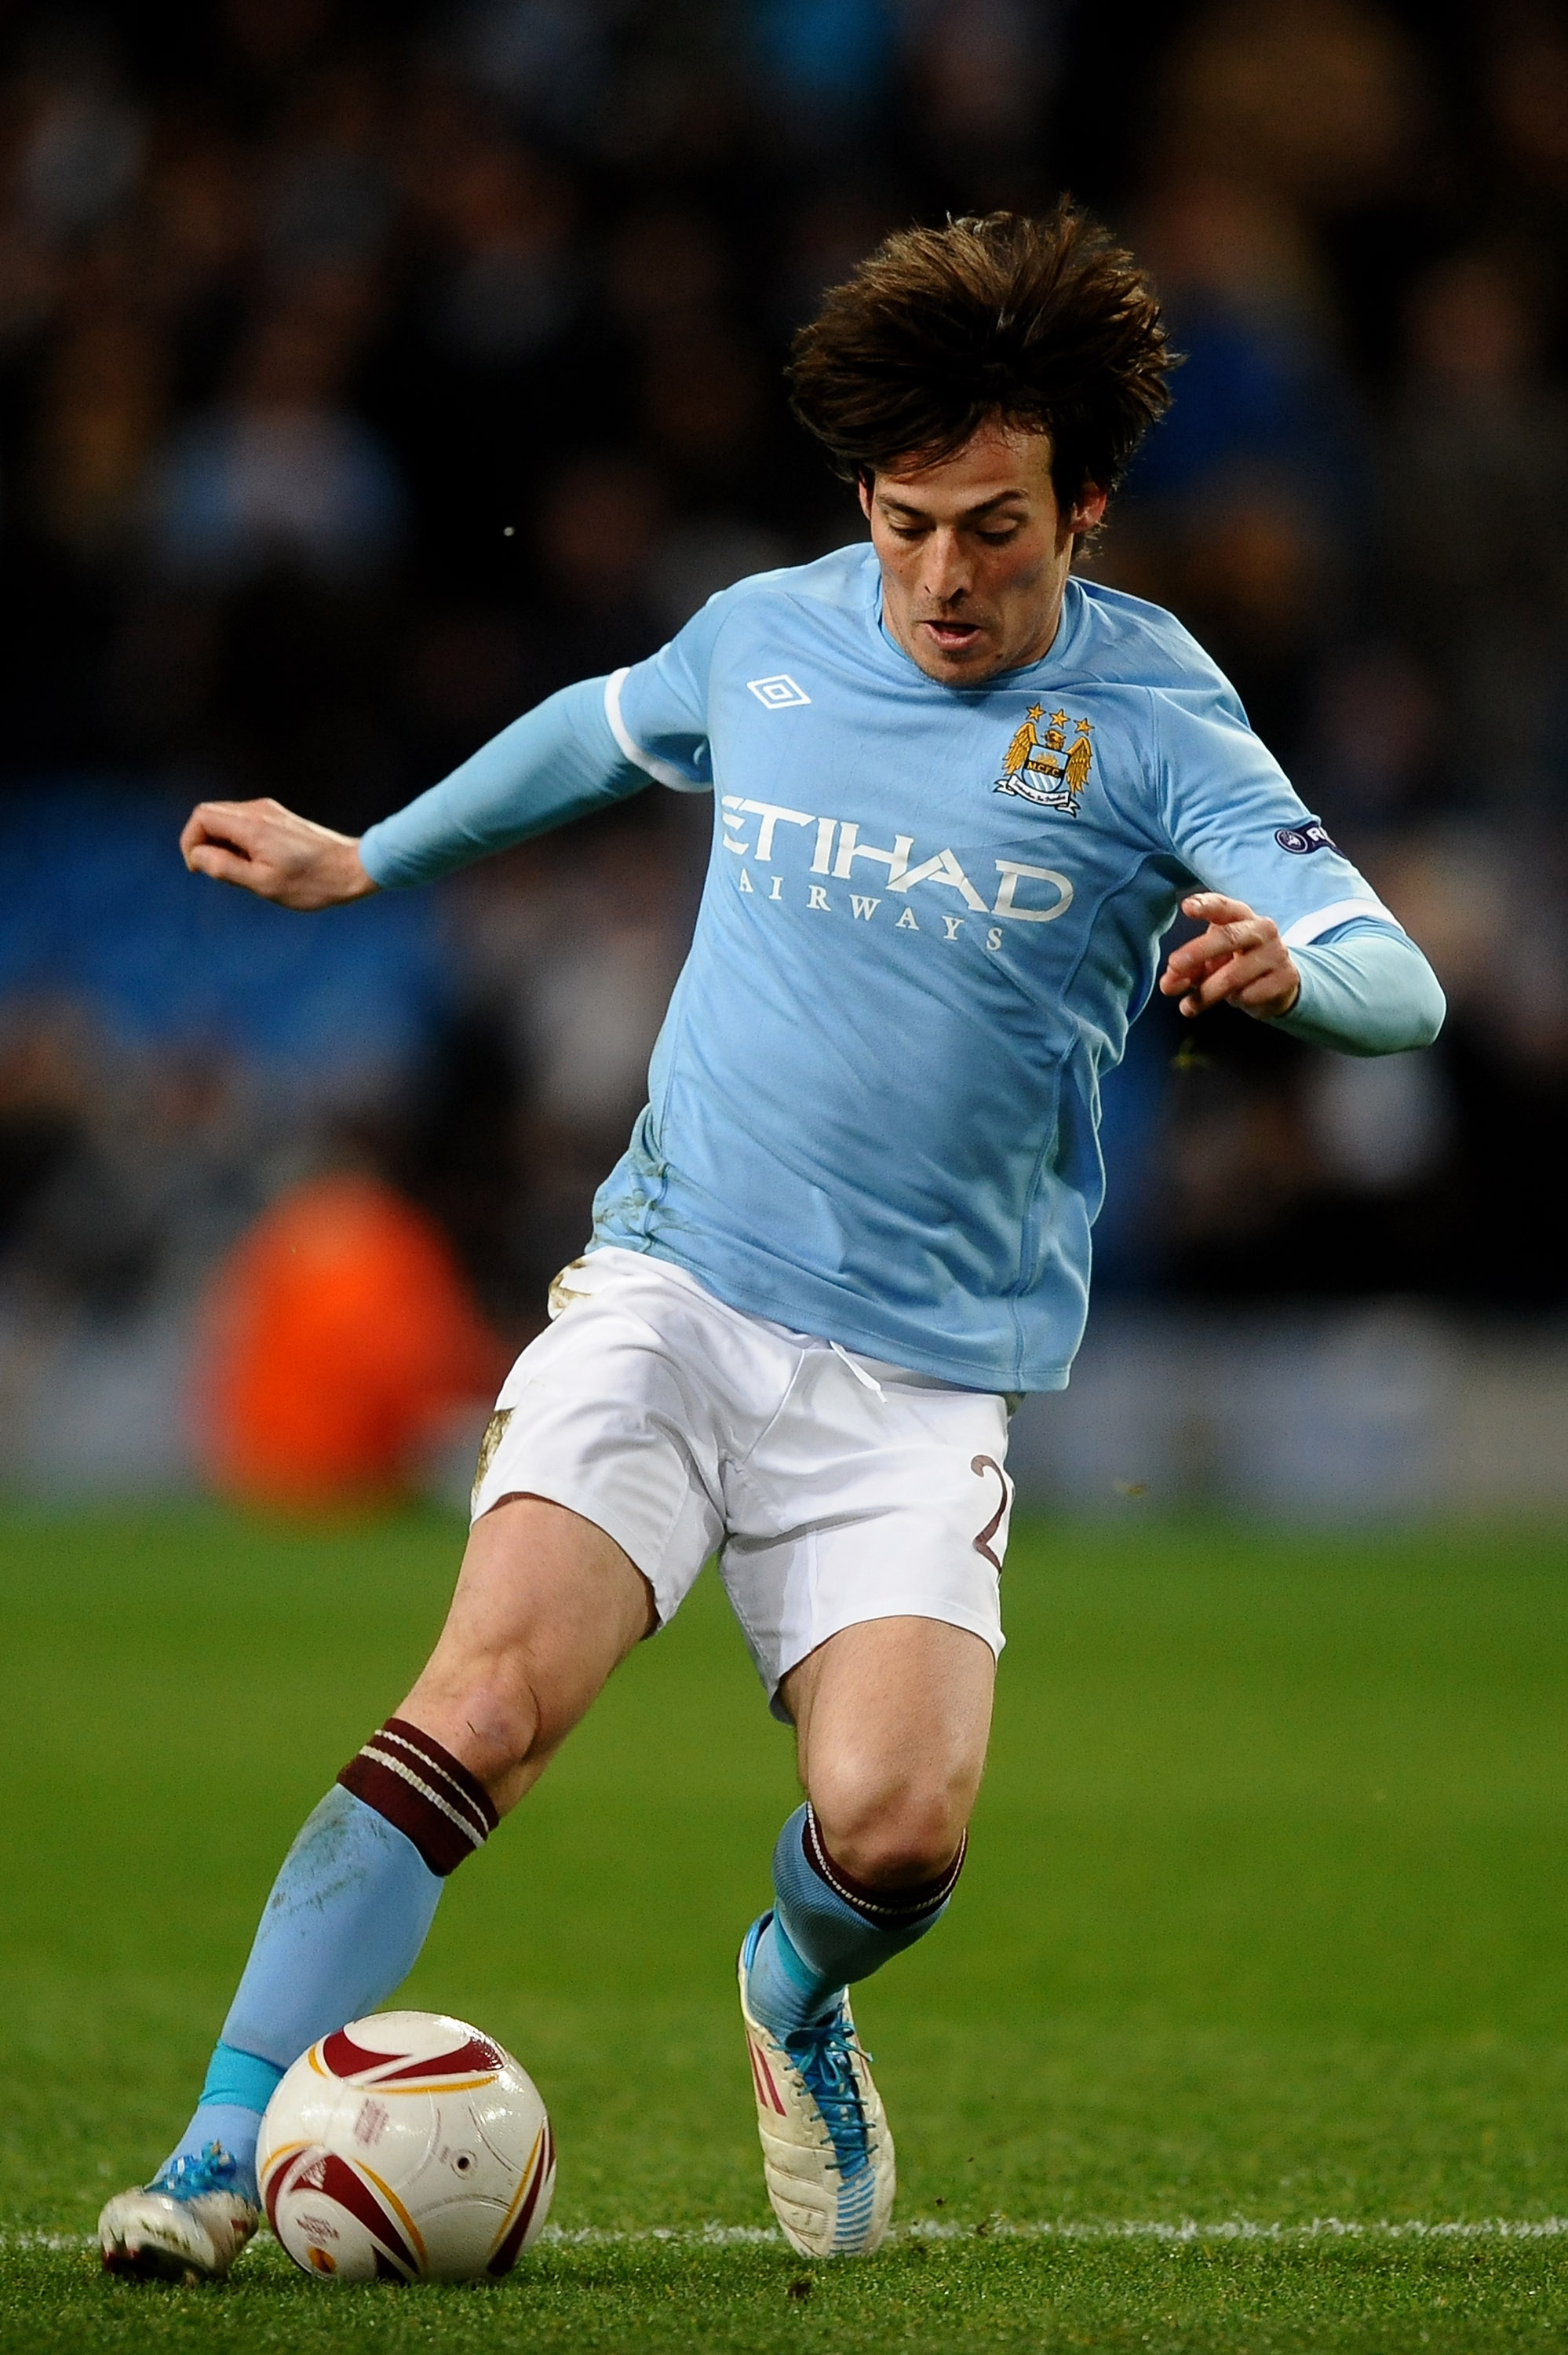 MANCHESTER, ENGLAND - MARCH 17:  David Silva of Manchester City on the ball during the UEFA Europa League round of 16 second leg match between Manchester City and Dynamo Kiev at City of Manchester Stadium on March 17, 2011 in Manchester, England.  (Photo